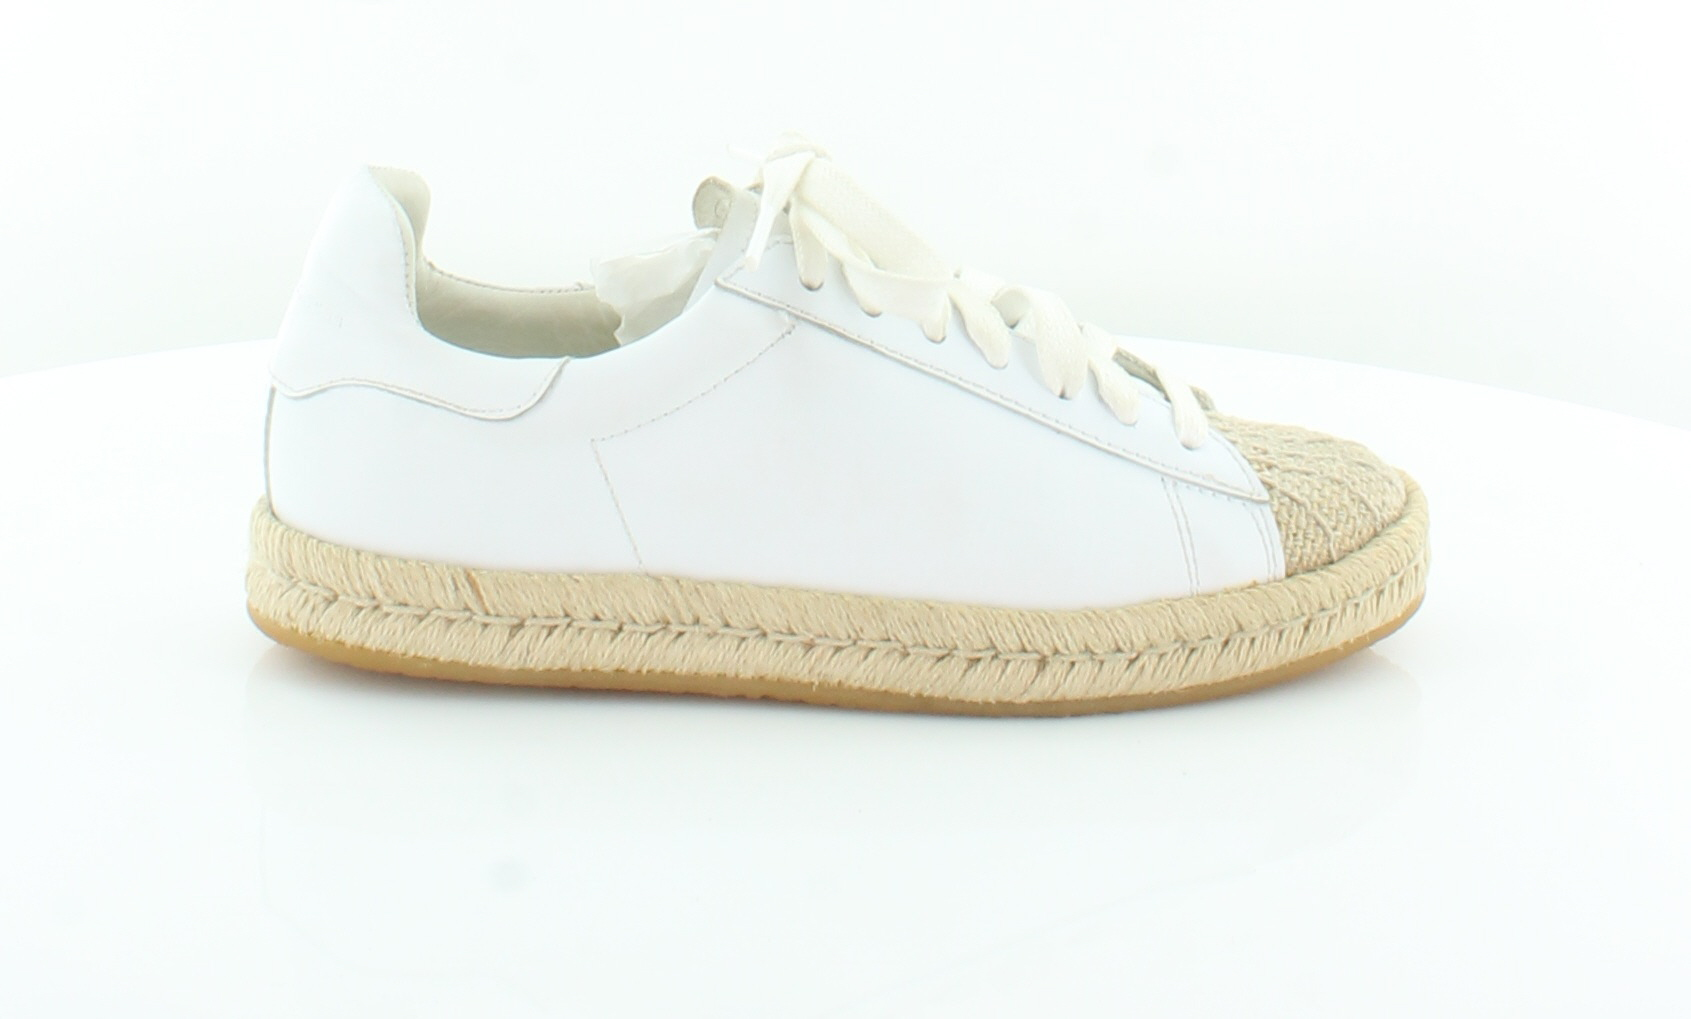 Alexander Wang Rian White Womens Shoes Size 6 Fashion M Fashion 6 Sneakers MSRP $425 431992